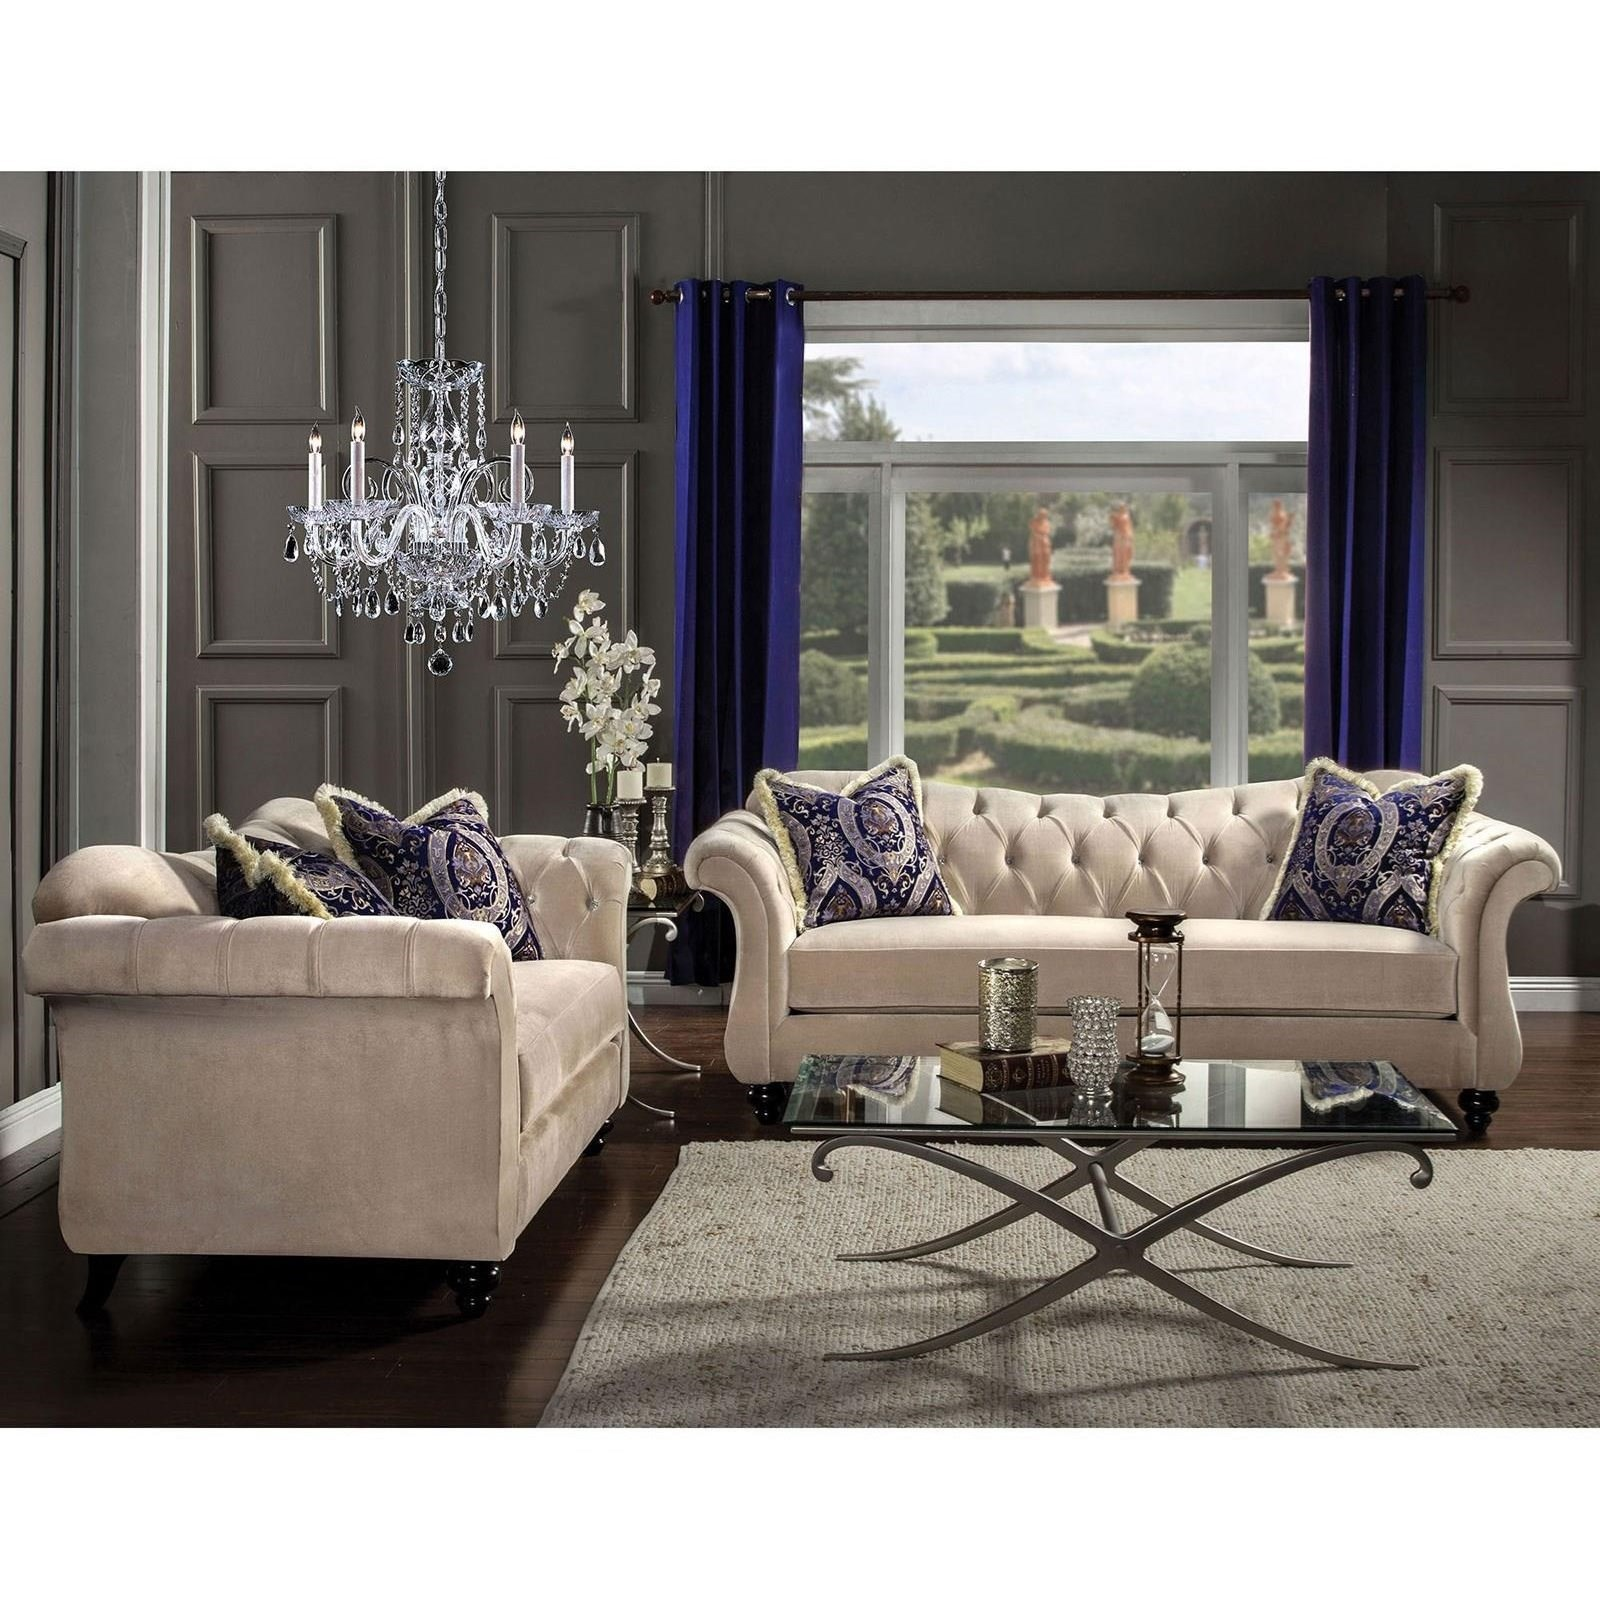 Antoinette Sofa and Love Seat at Household Furniture